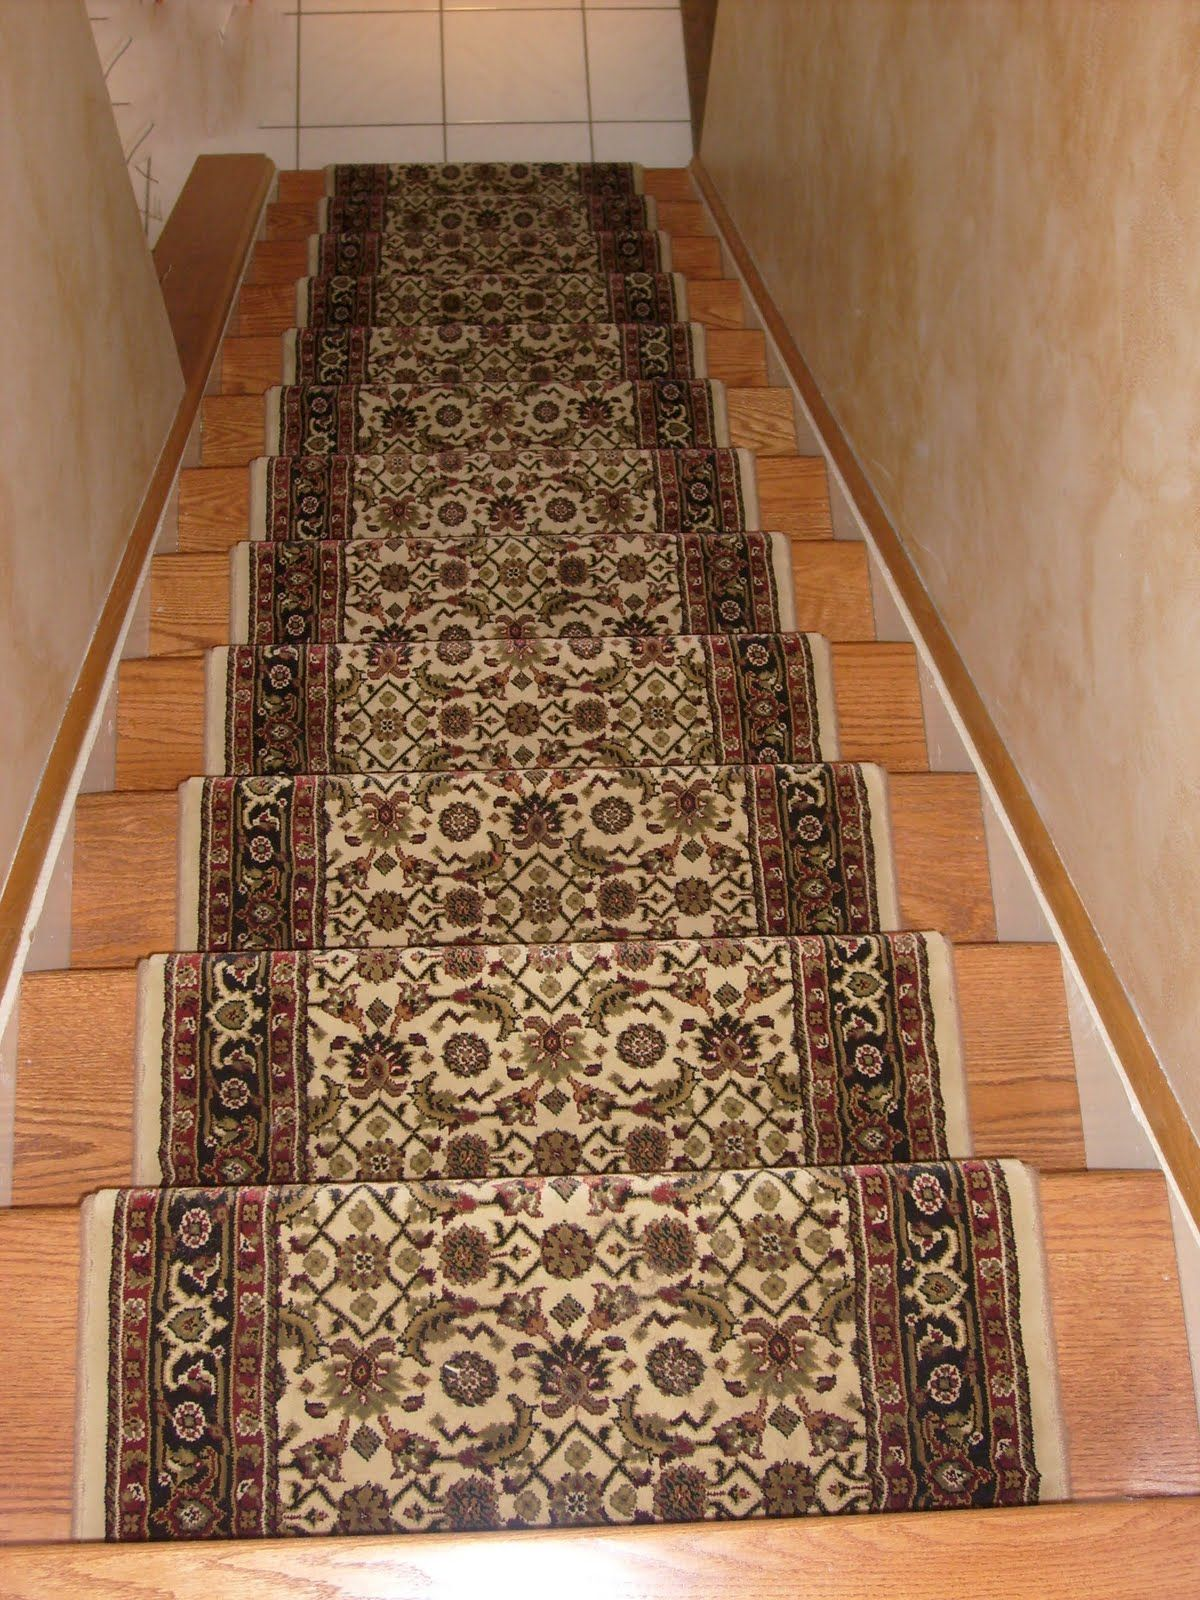 Luxury Hallway Carpet Runners by the Foot